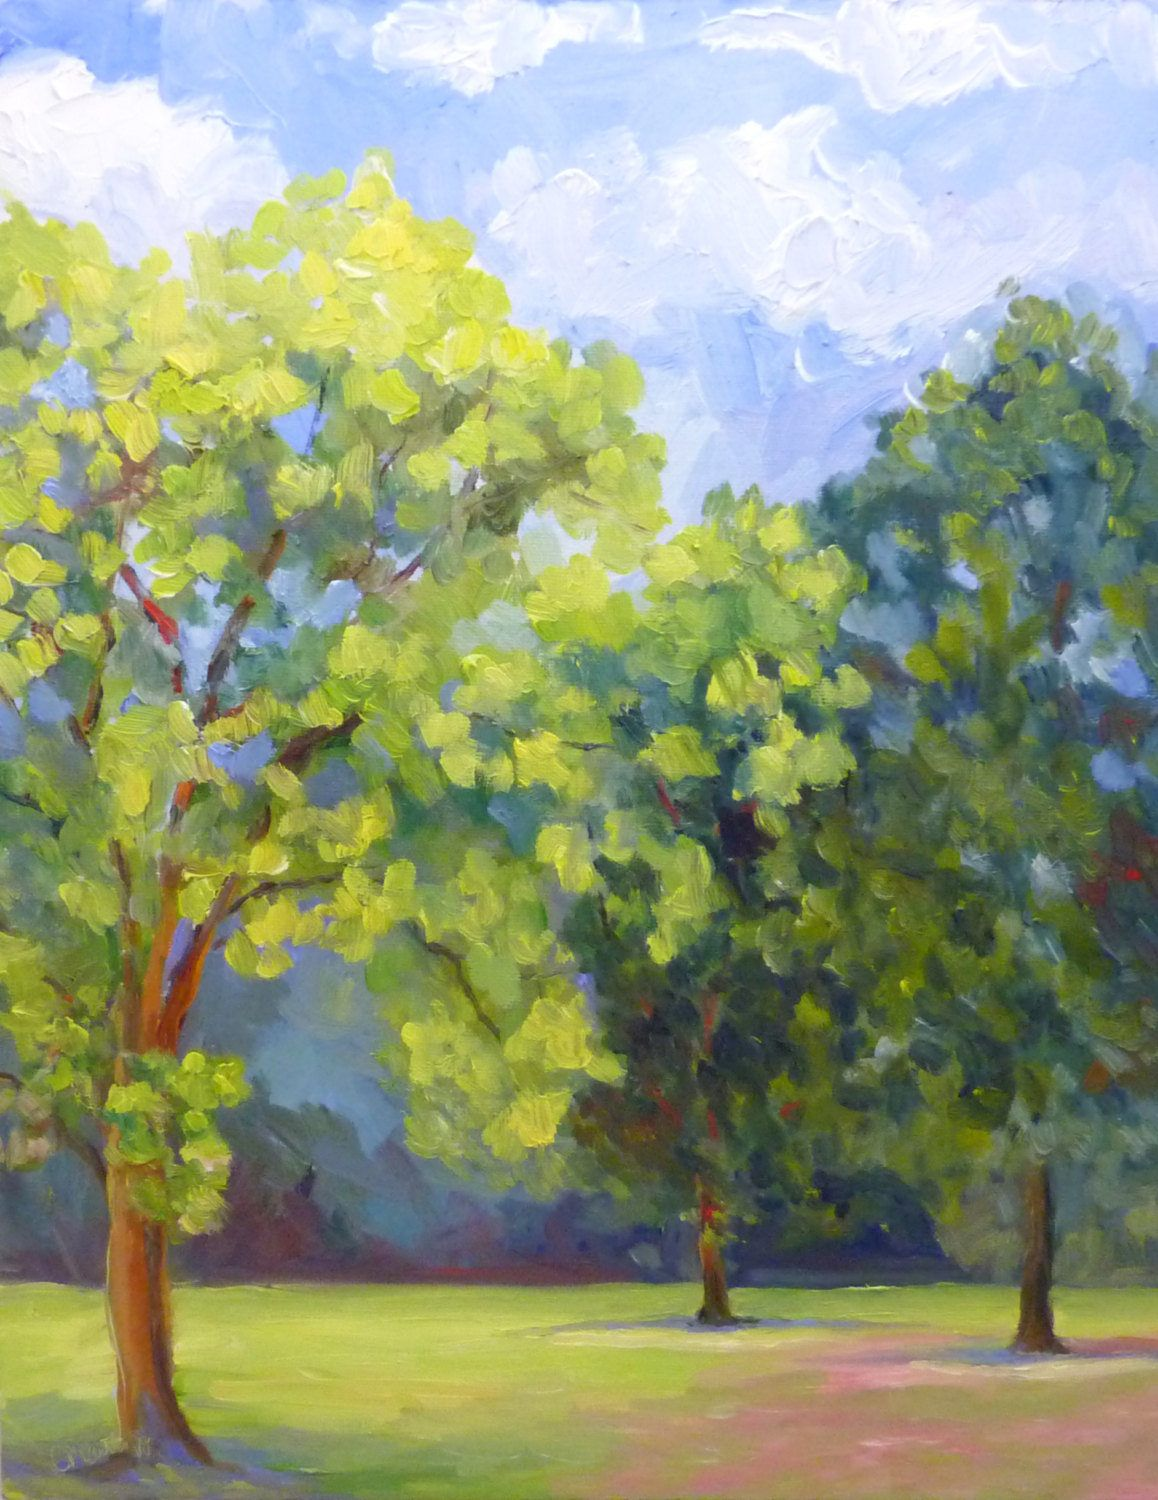 Oil Painting on Canvas Large Plein Air Landscape Summer